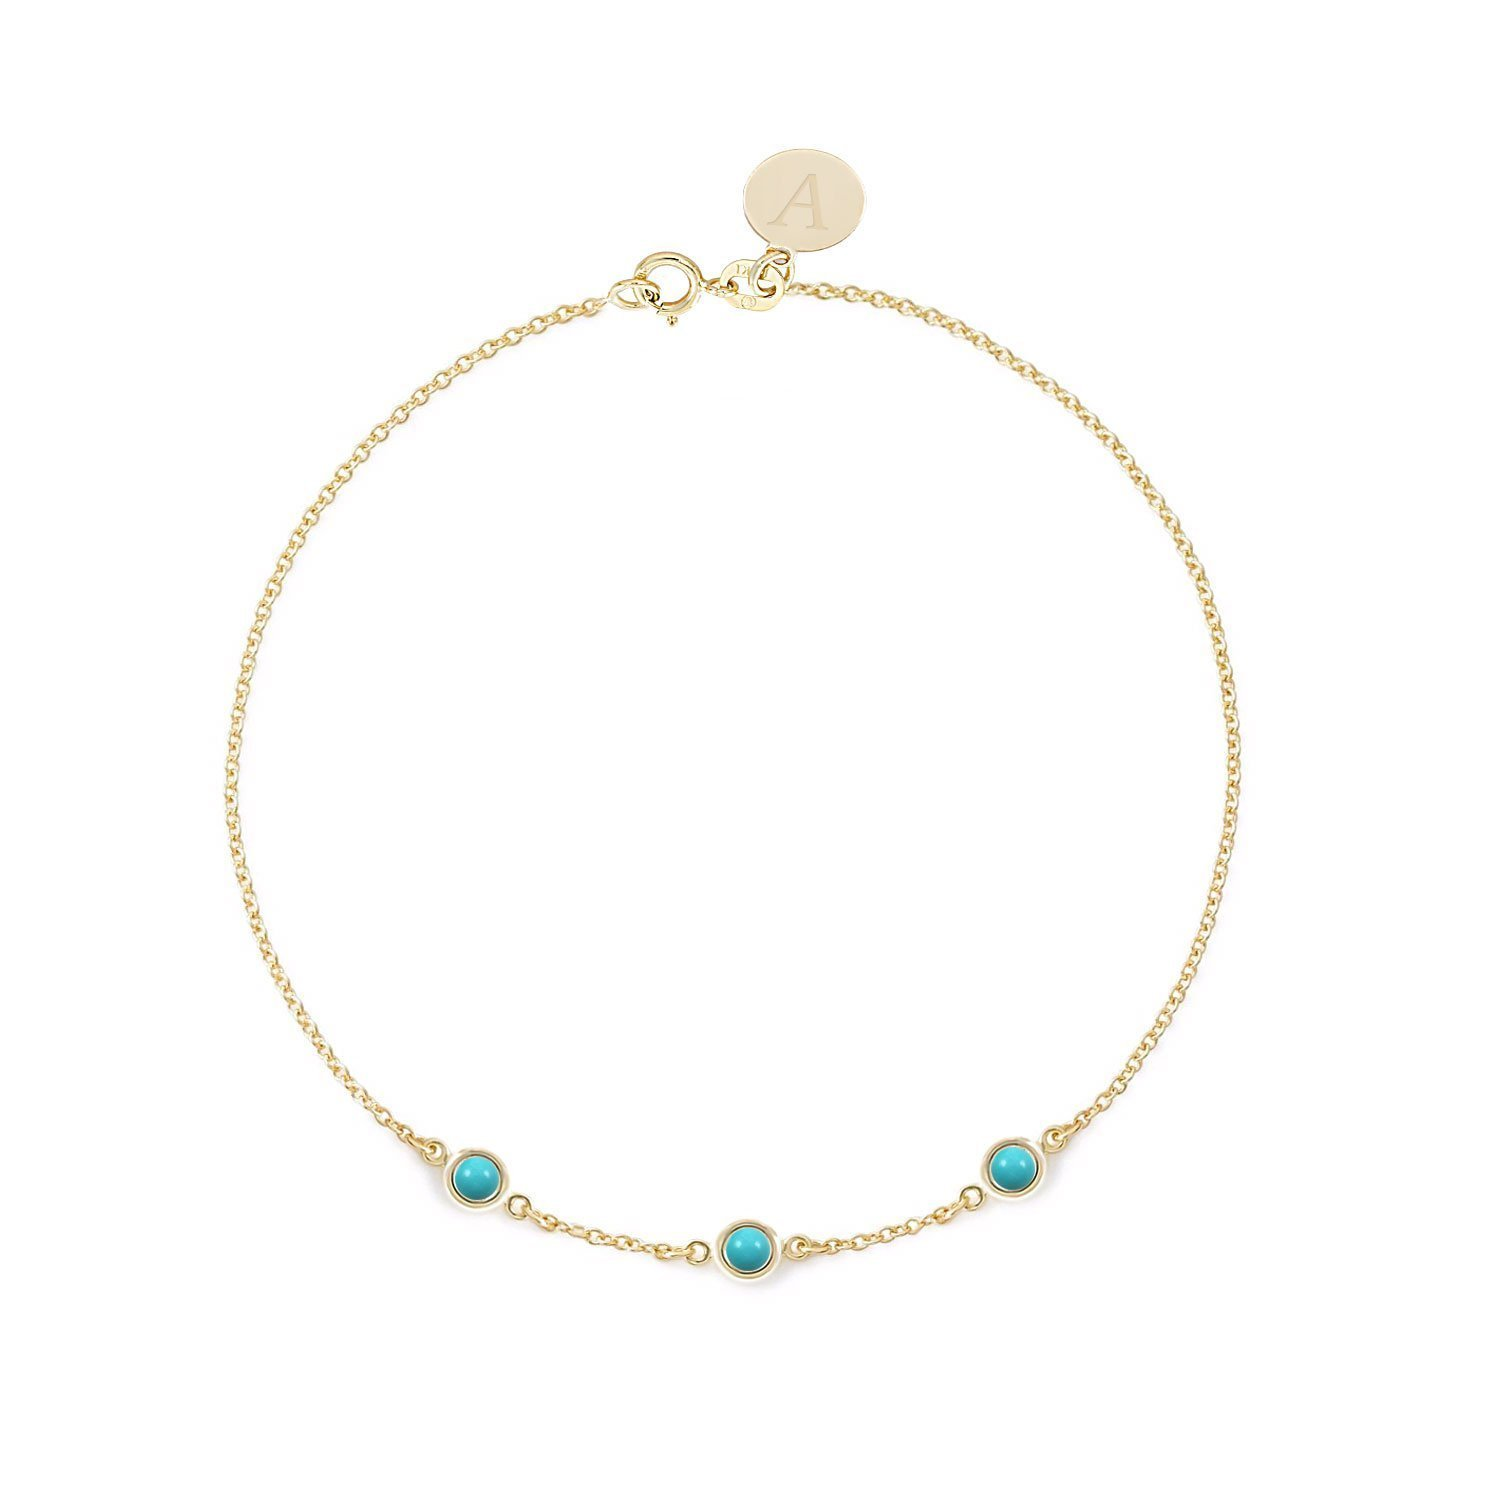 BallucciToosi Turquoise Bracelet - Real 14k 18k Solid Yellow Rose White Gold - Round bezel set Solitaire Charm - Blue Turquoise Charm personalized for Women - Free Initials Engraving